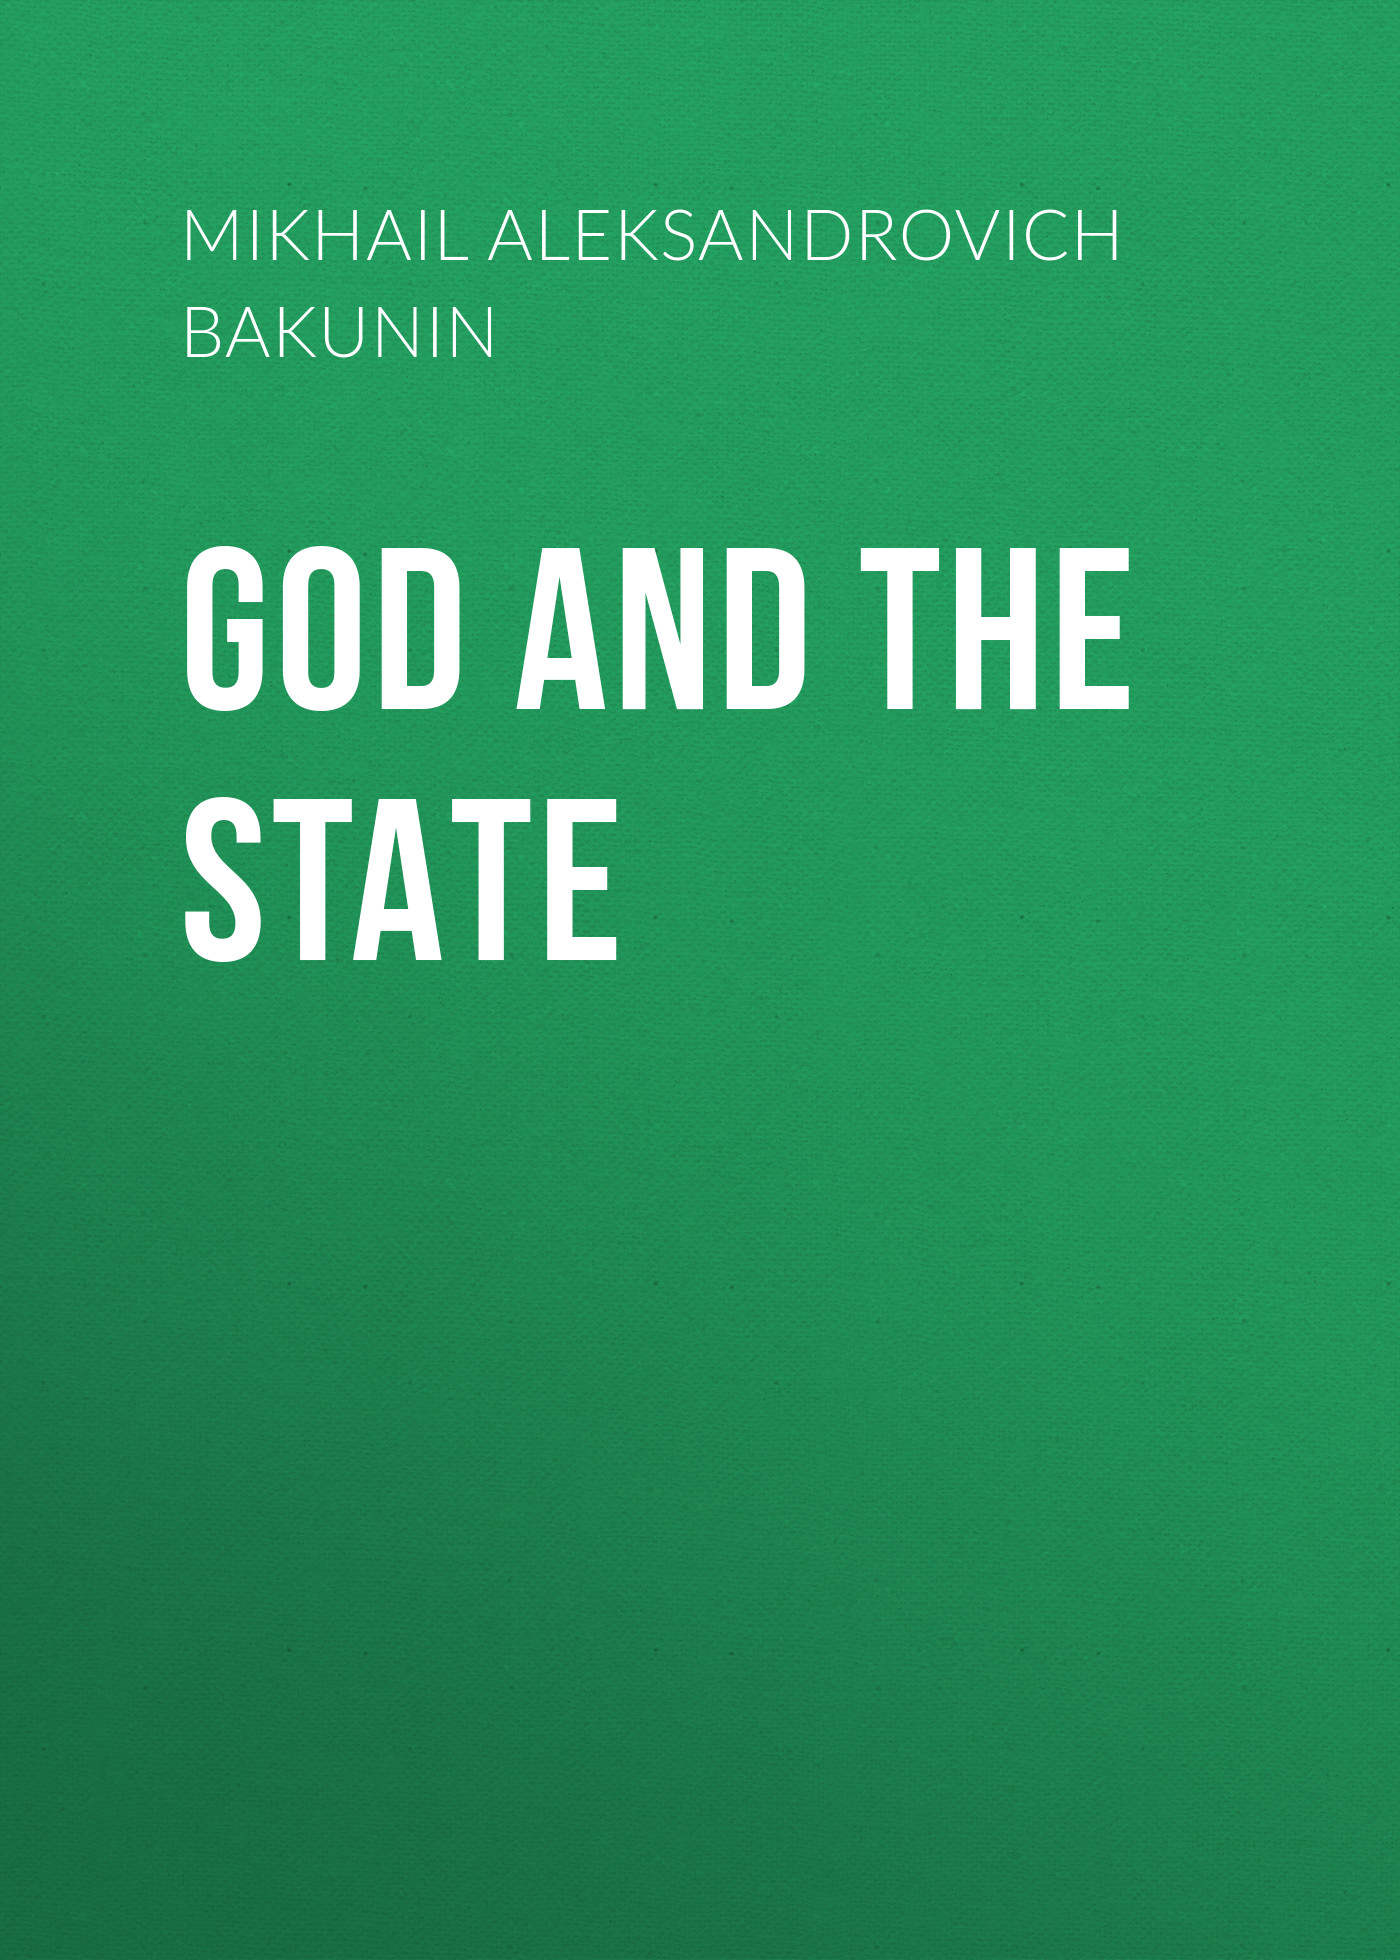 Михаил Бакунин God and the State bakunin mikhail aleksandrovich god and the state